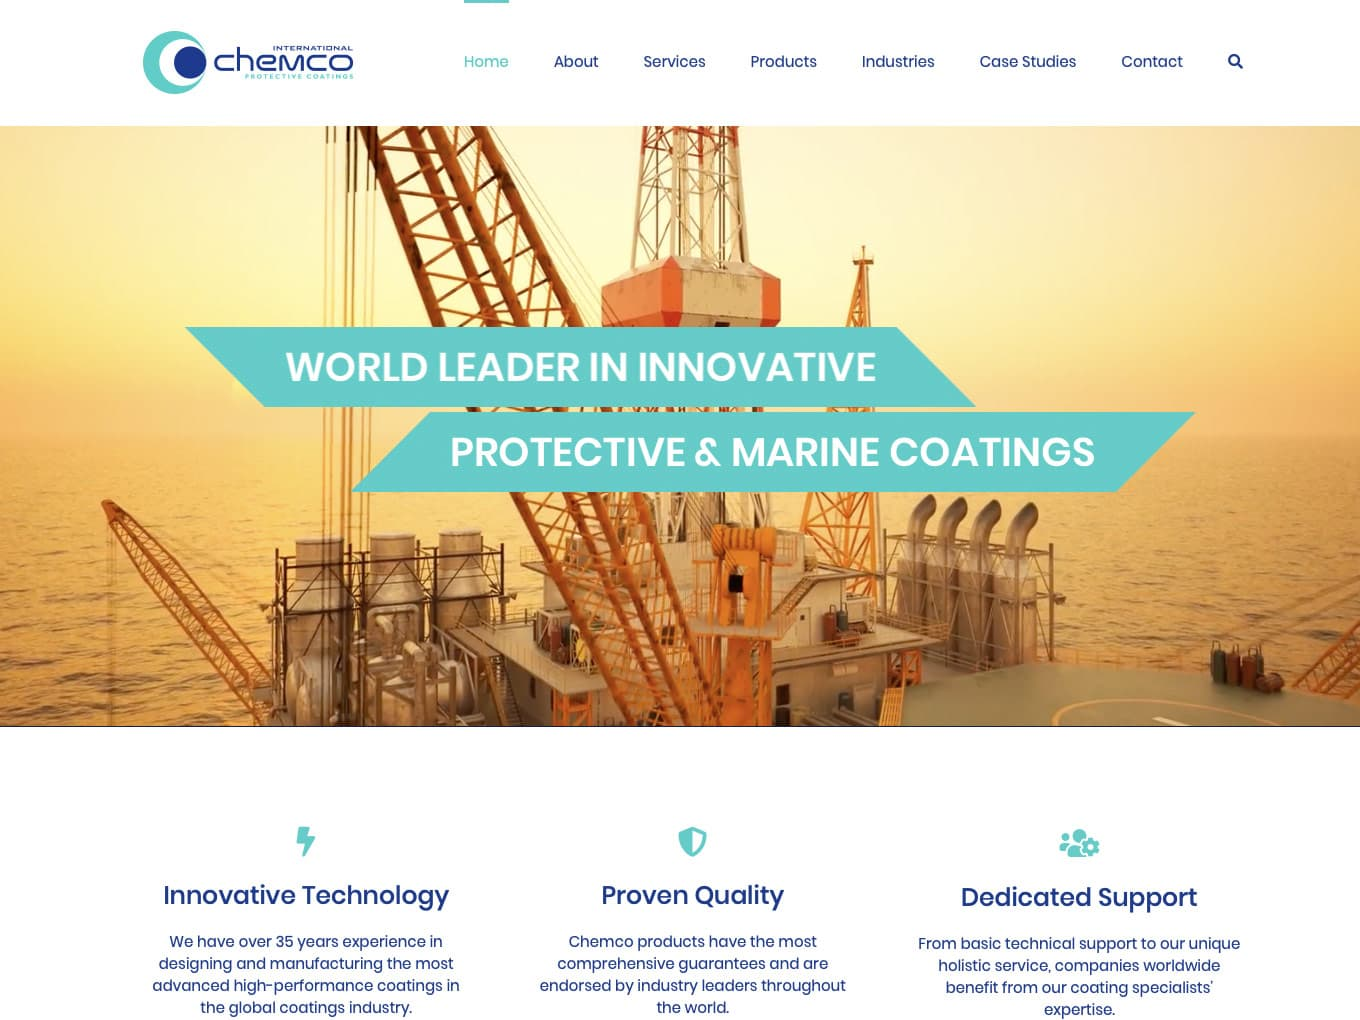 Chemco International website developed by Freak Design